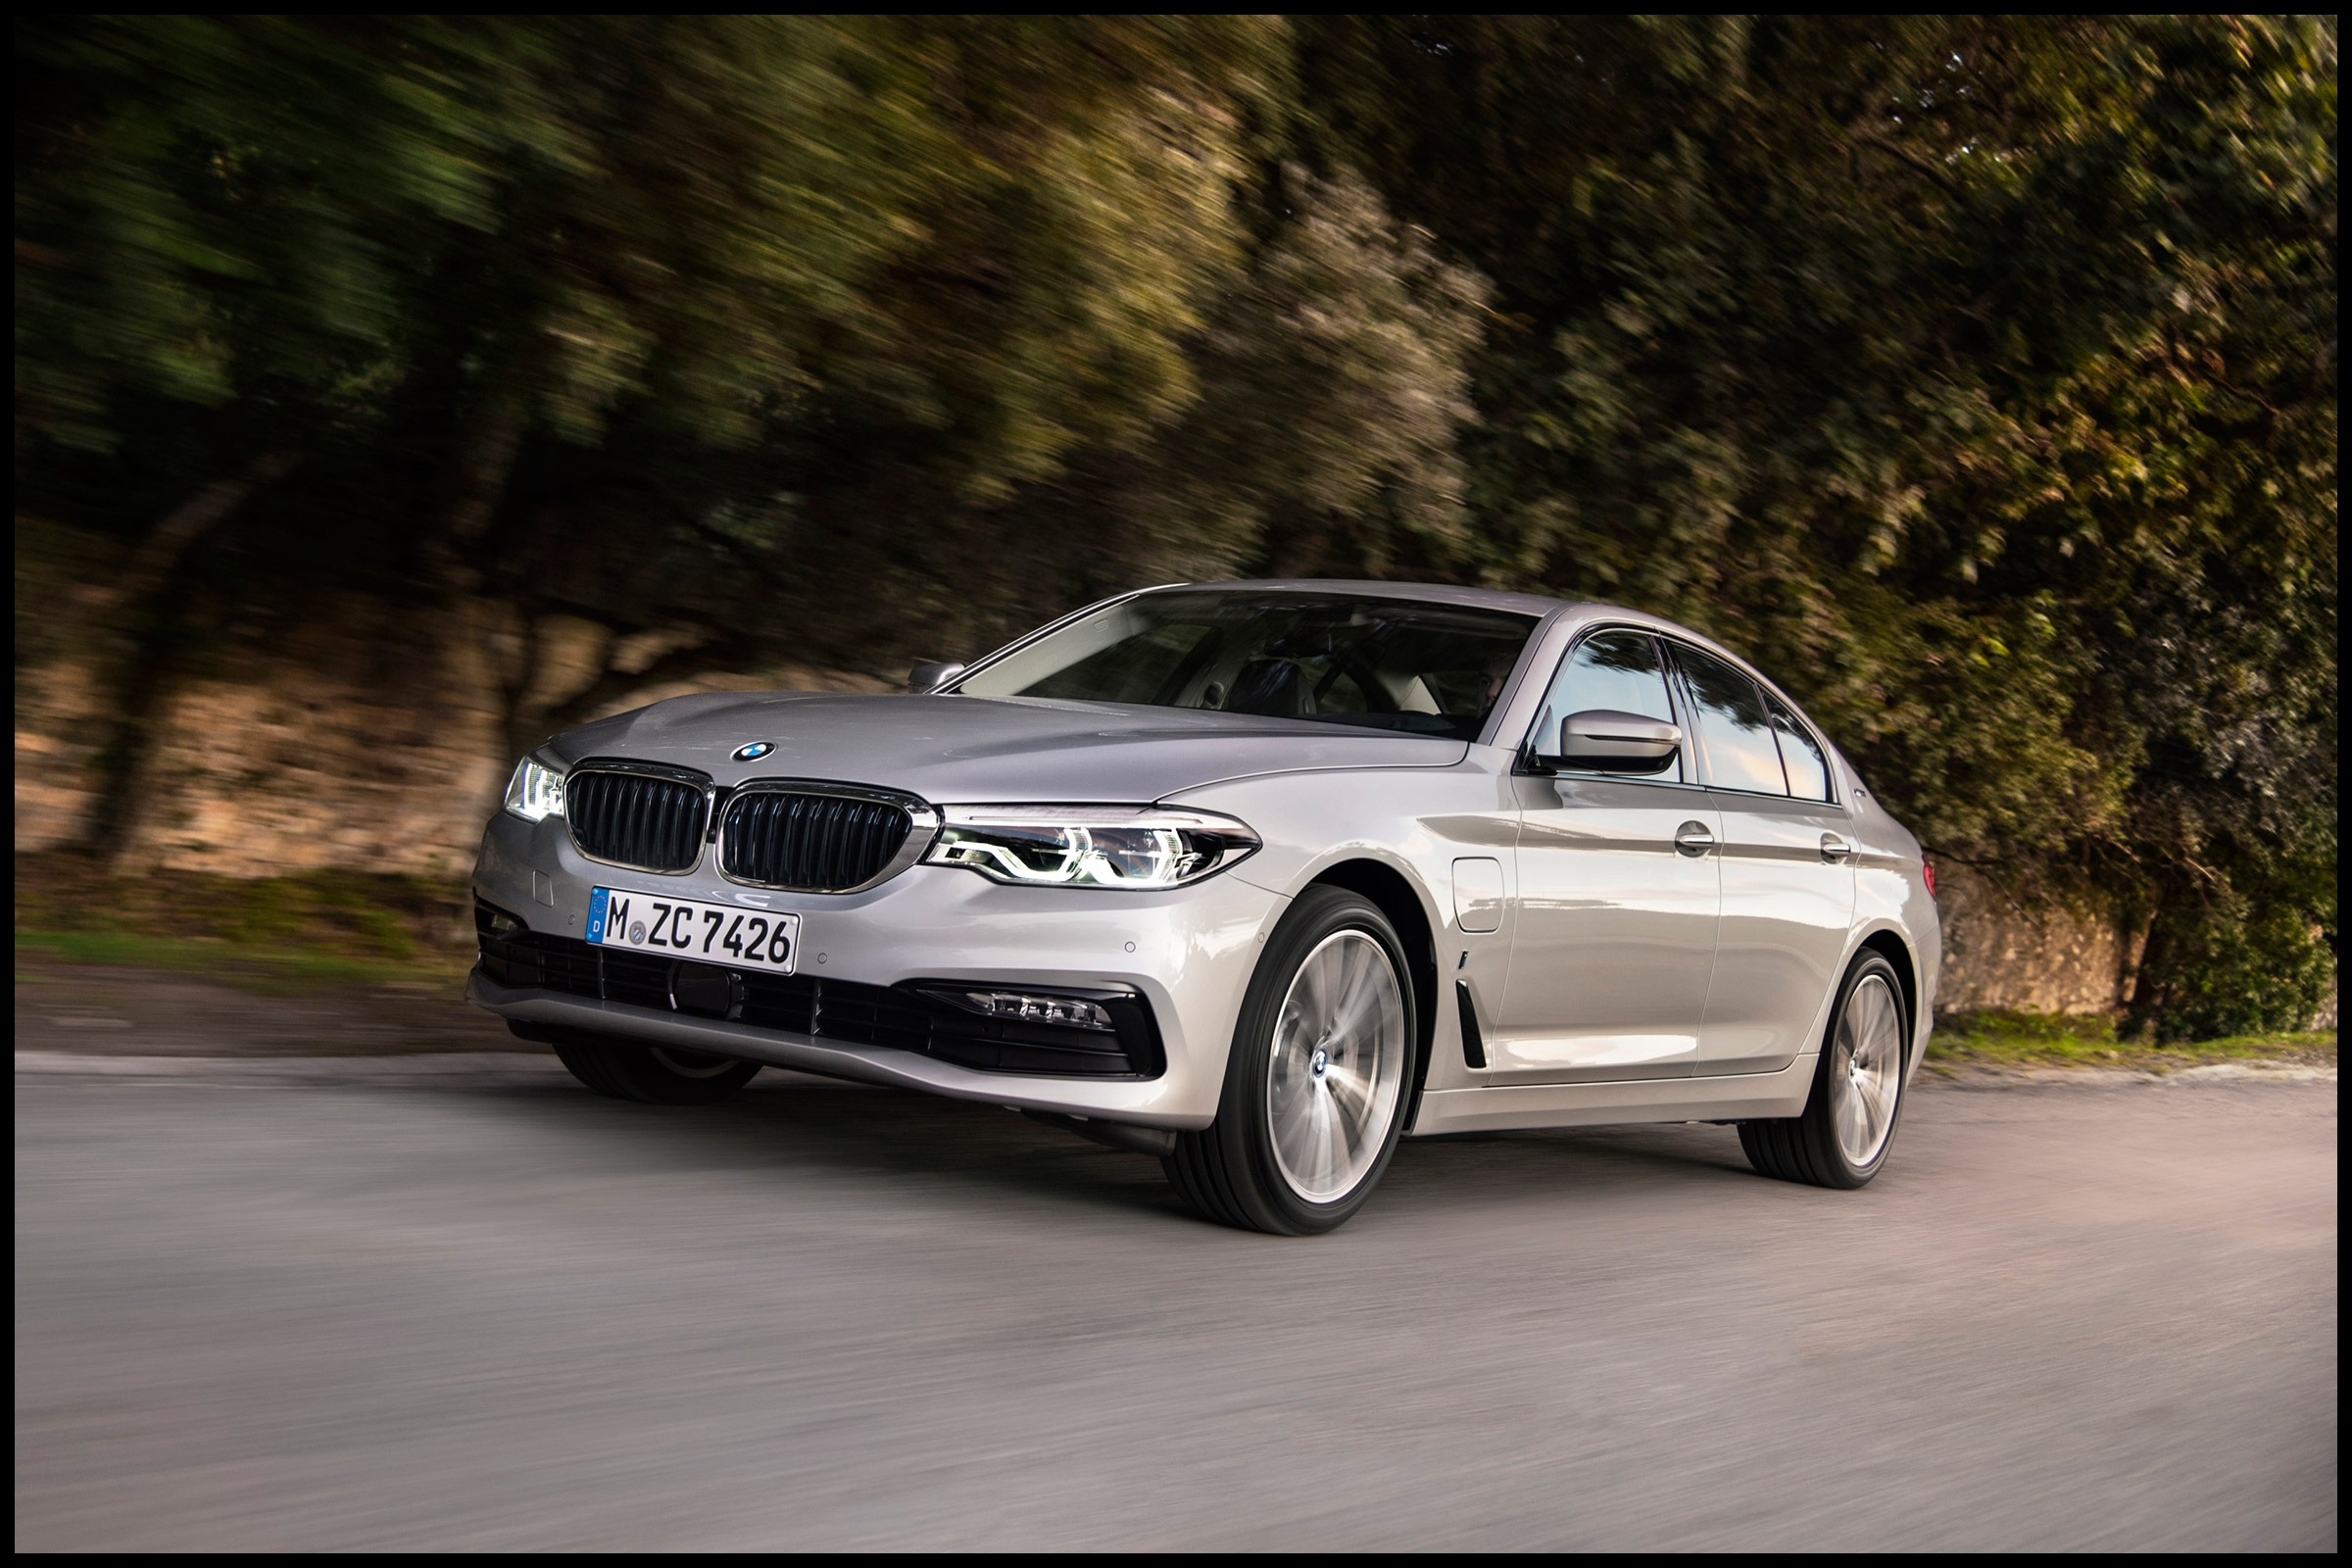 530e hybrid joins new BMW 5 Series range price and specs announced